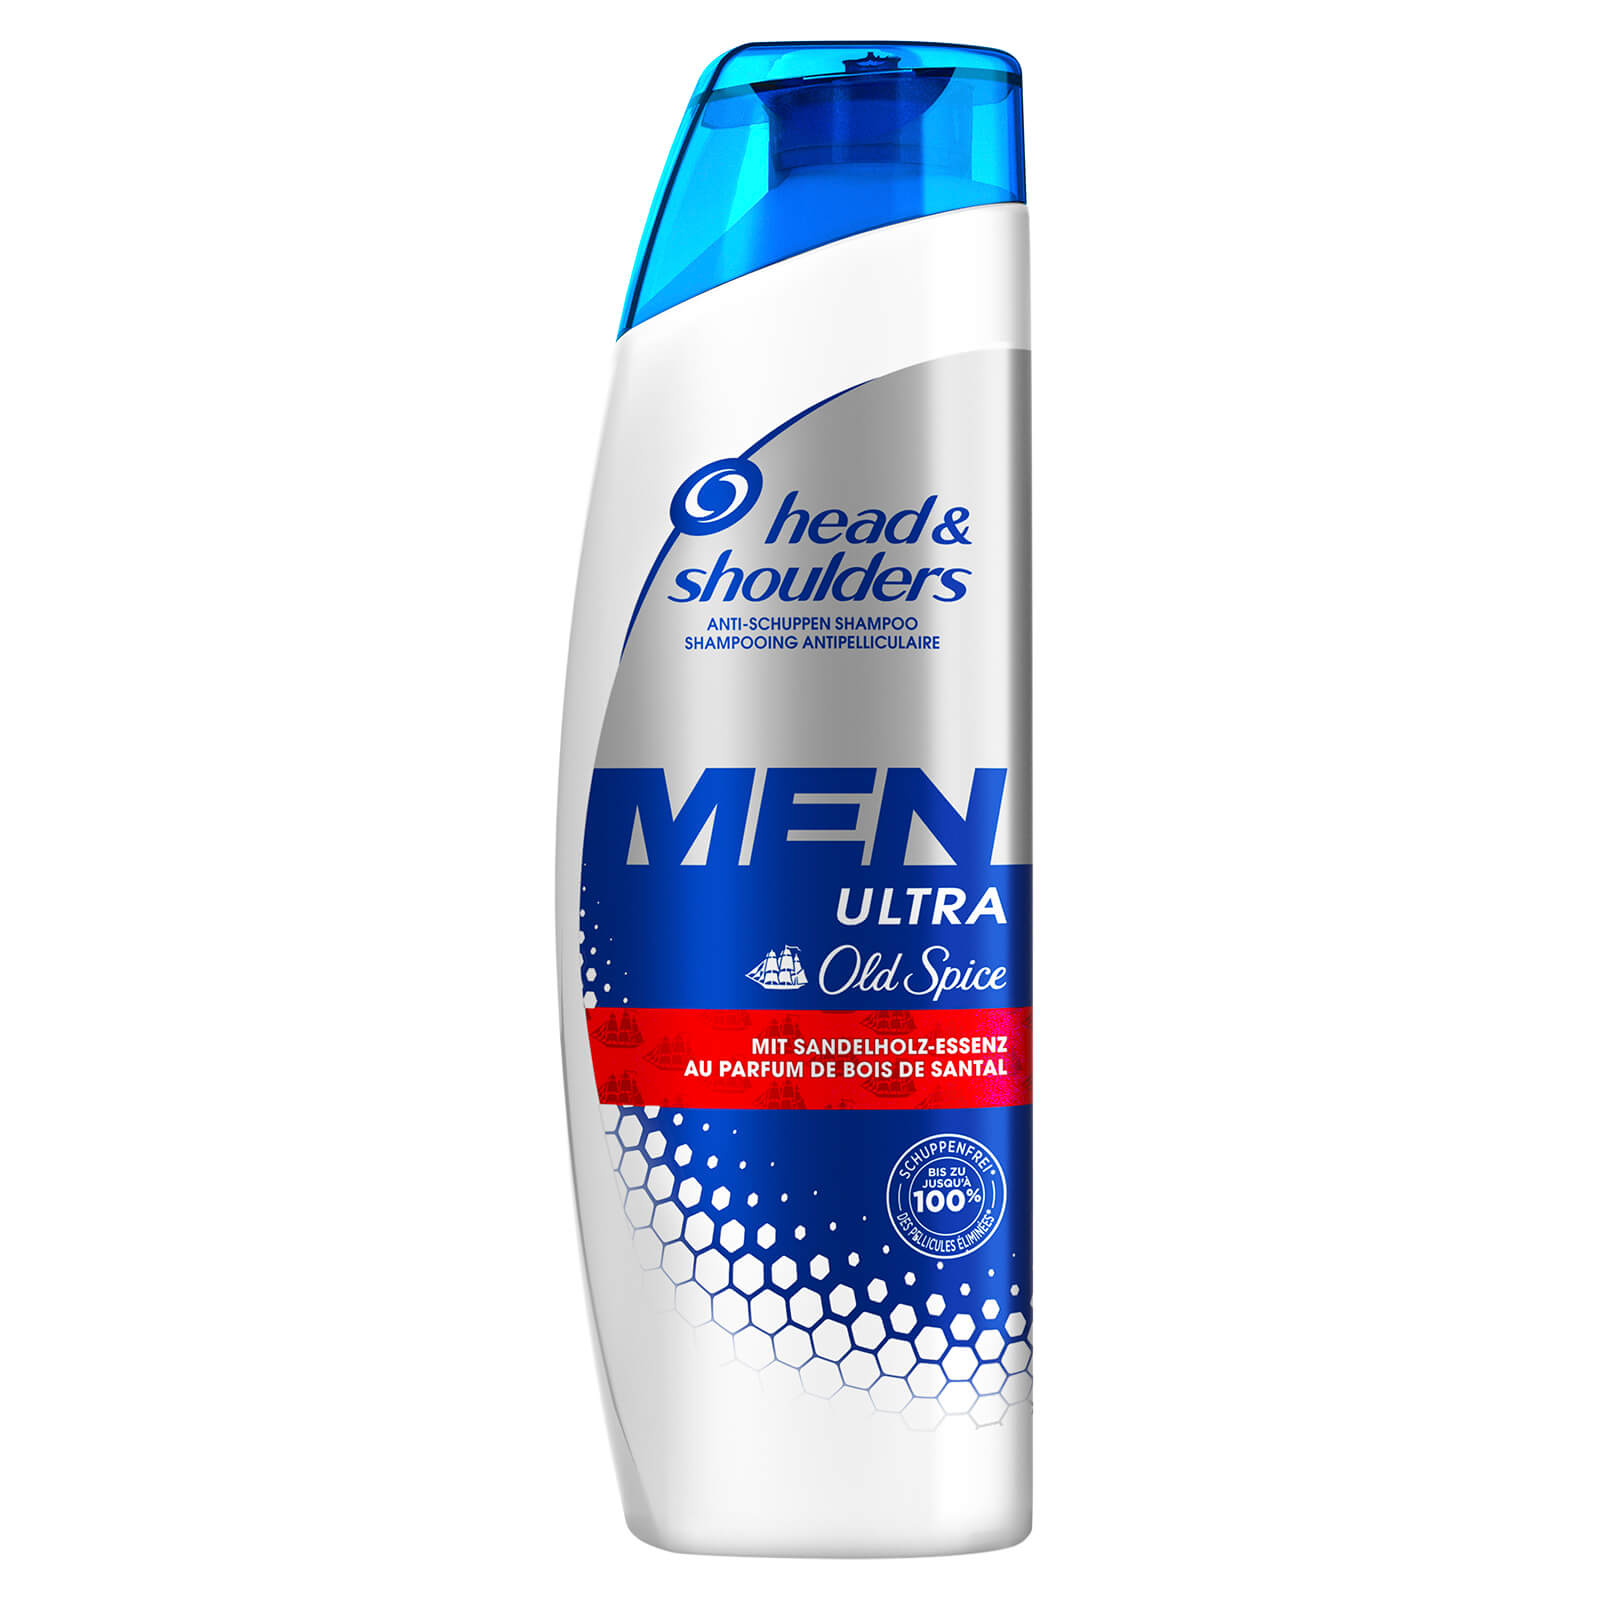 Men Ultra Old Spice Shampoo